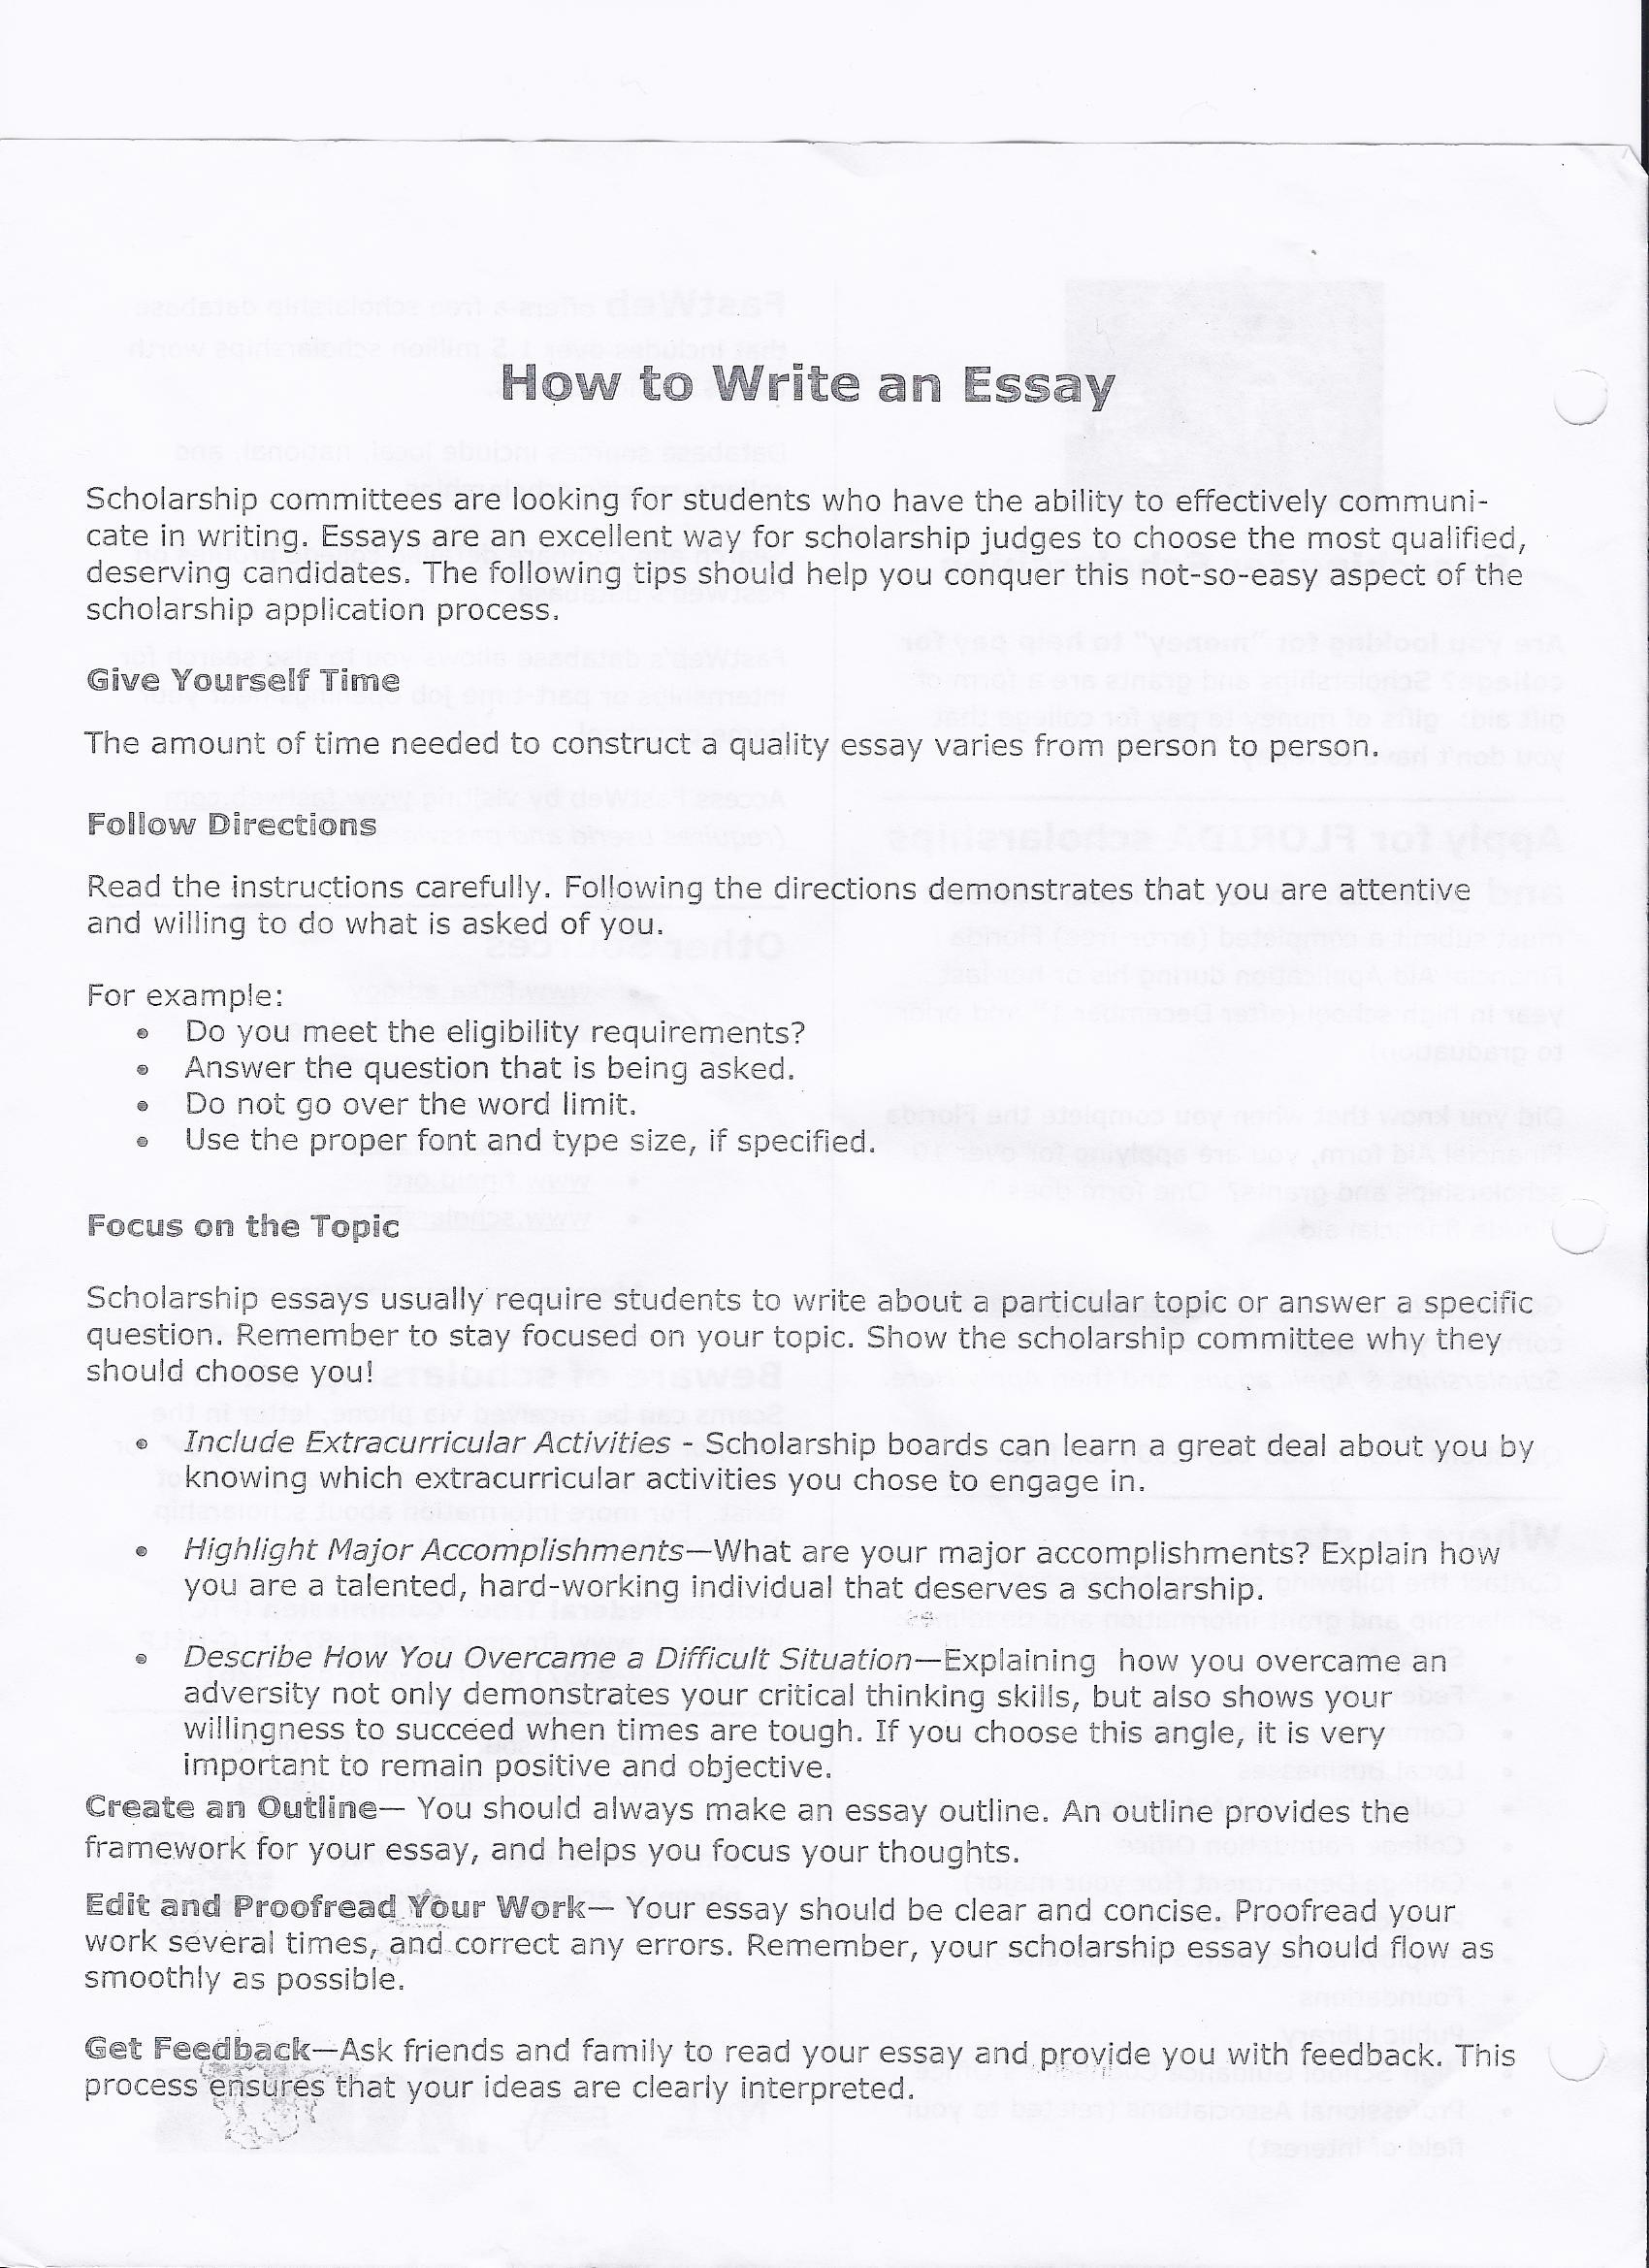 personal legend essay word essay pages collage essay collage essay  collage essay collage essay collage essay jonathon lay personal collage essaycollage essay buy key stage geography